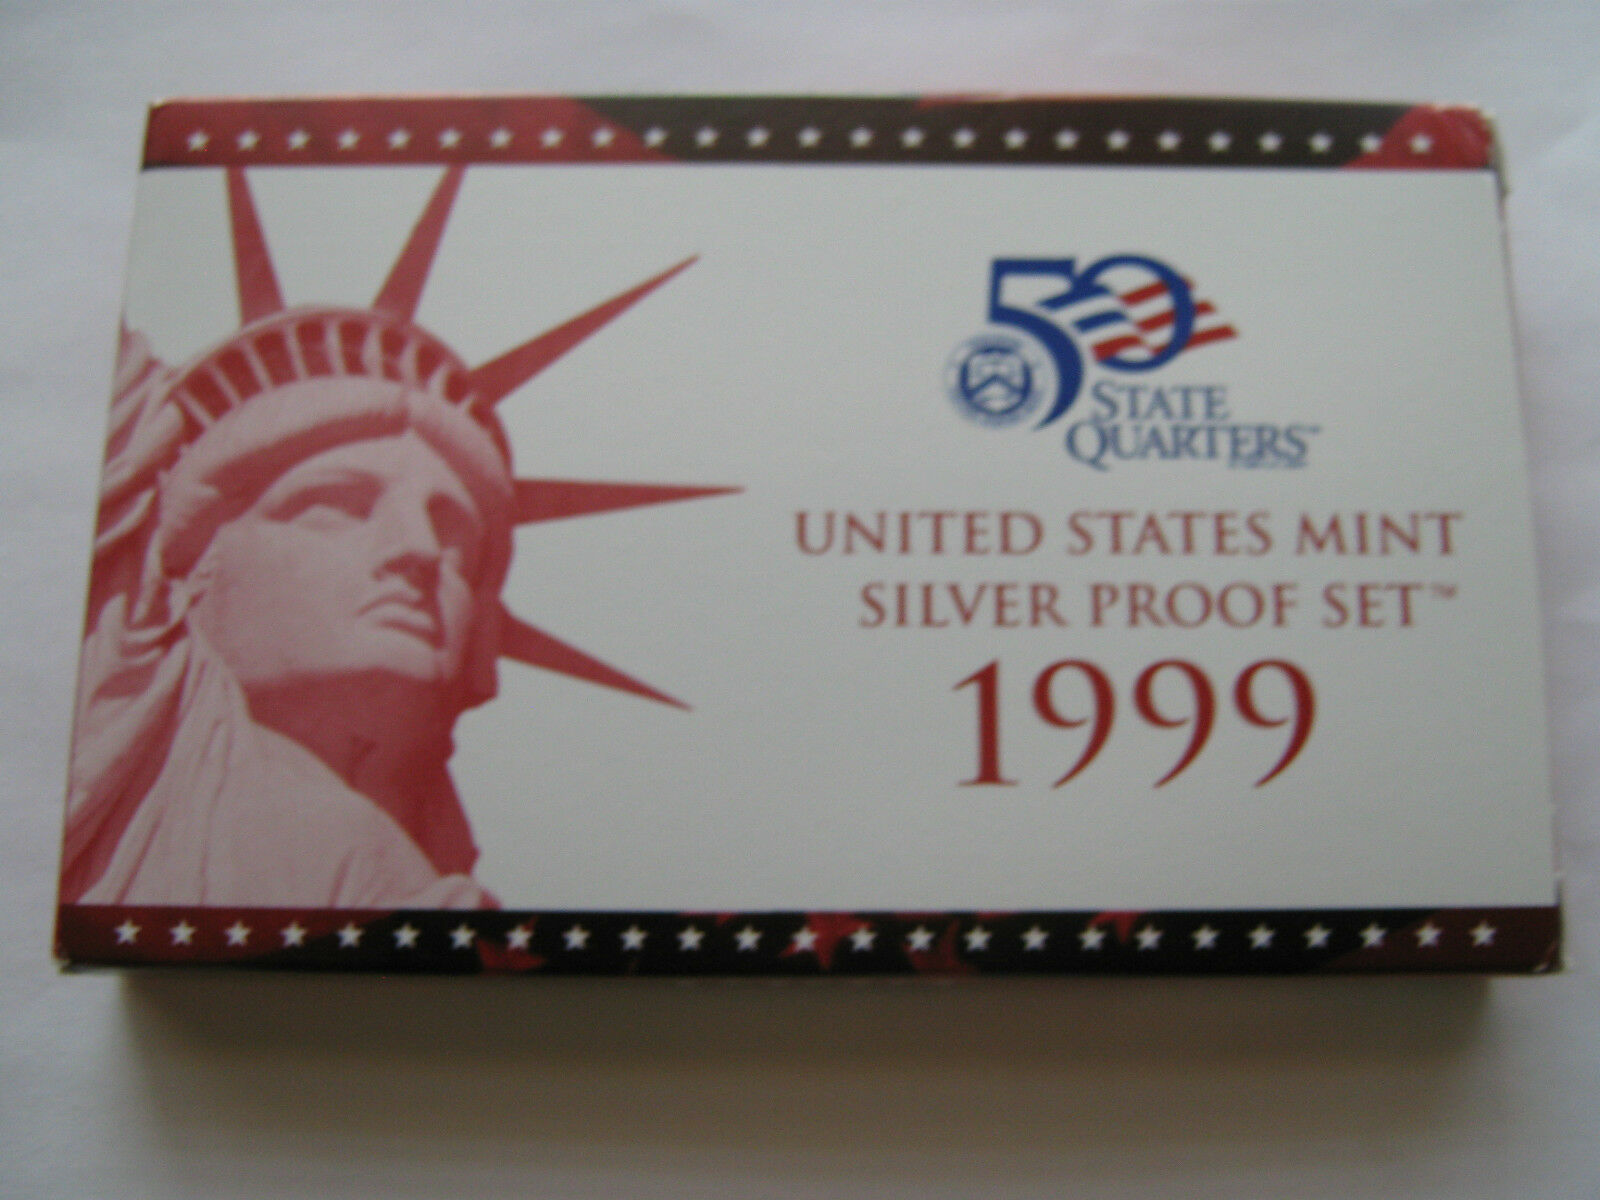 1999 Unites States Mint Silver Proof Set